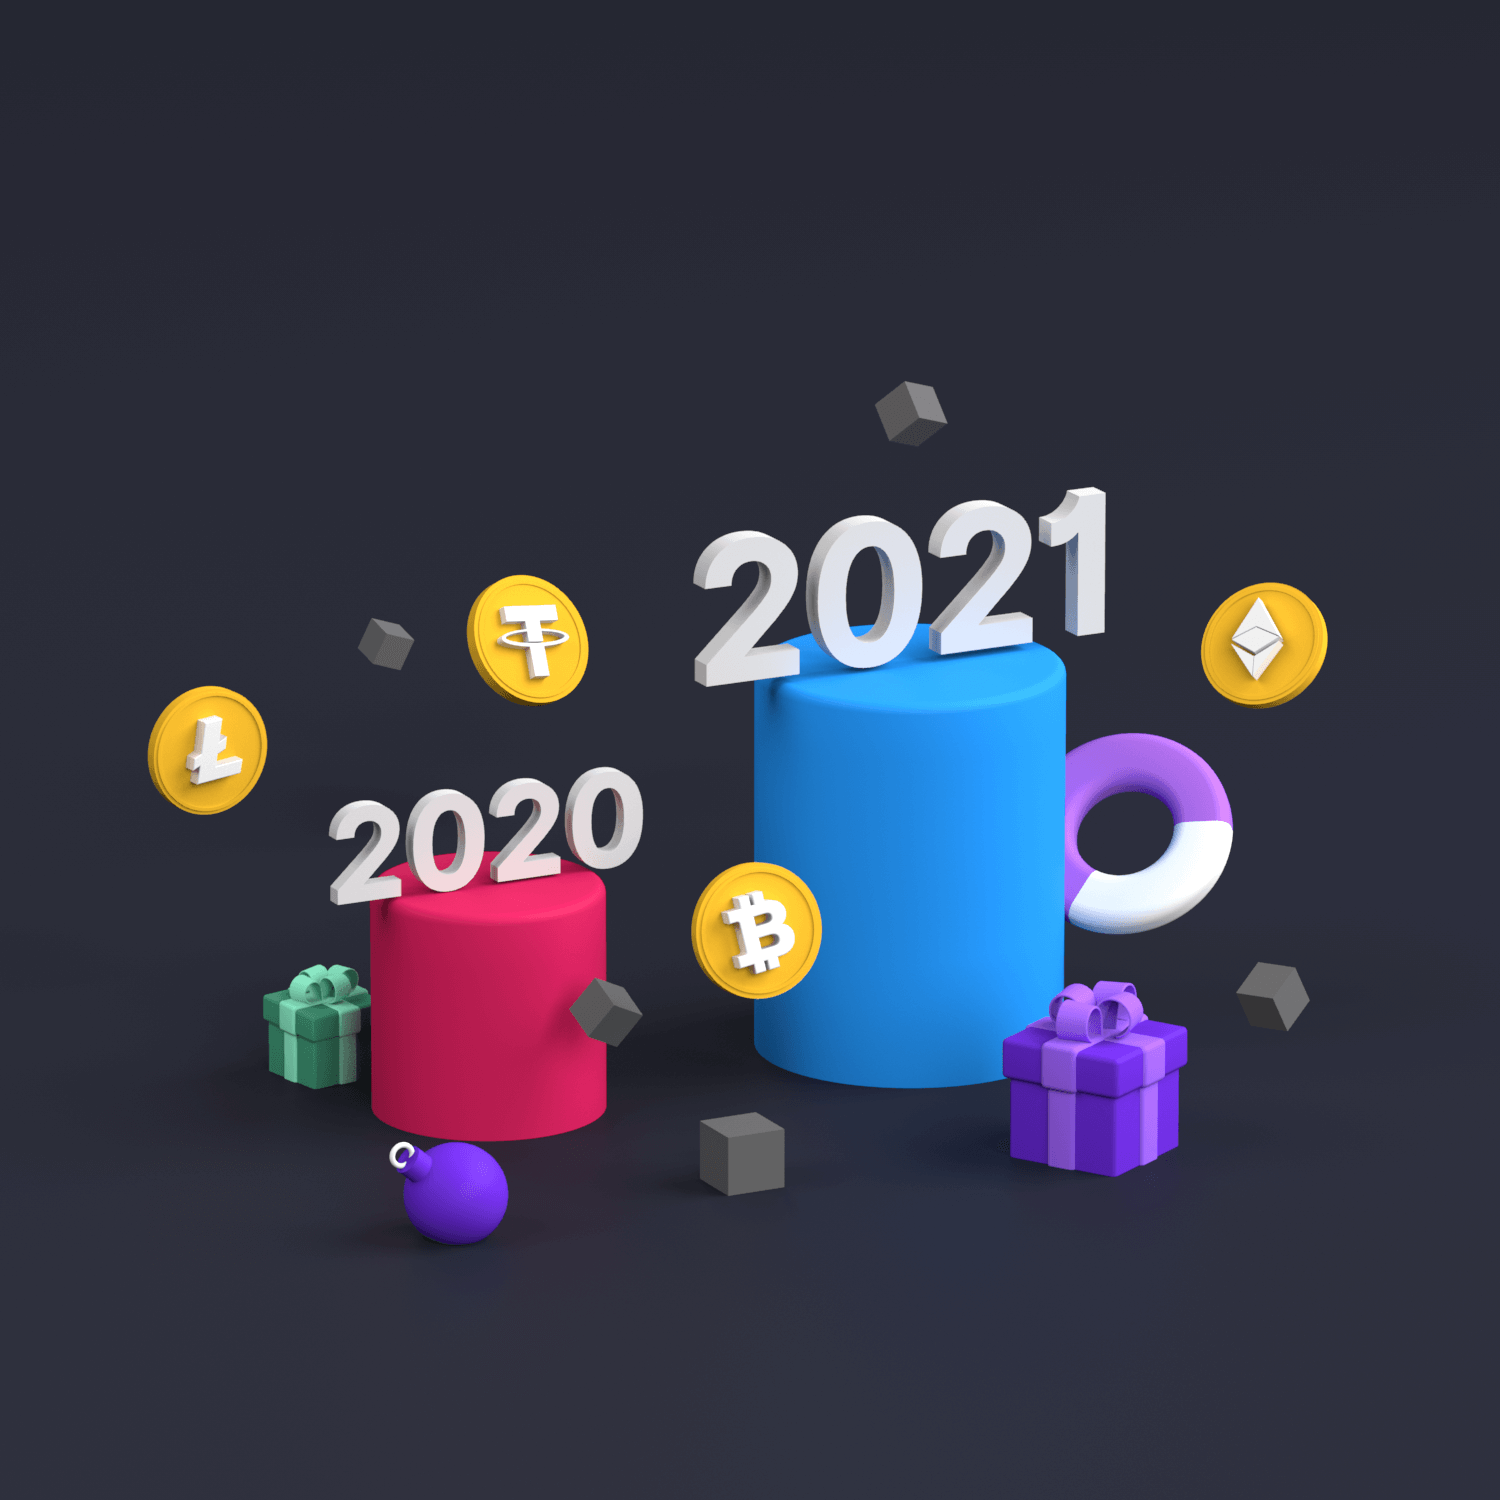 Revealed: Your Views on Crypto in 2020 — and What Will Happen in 2021